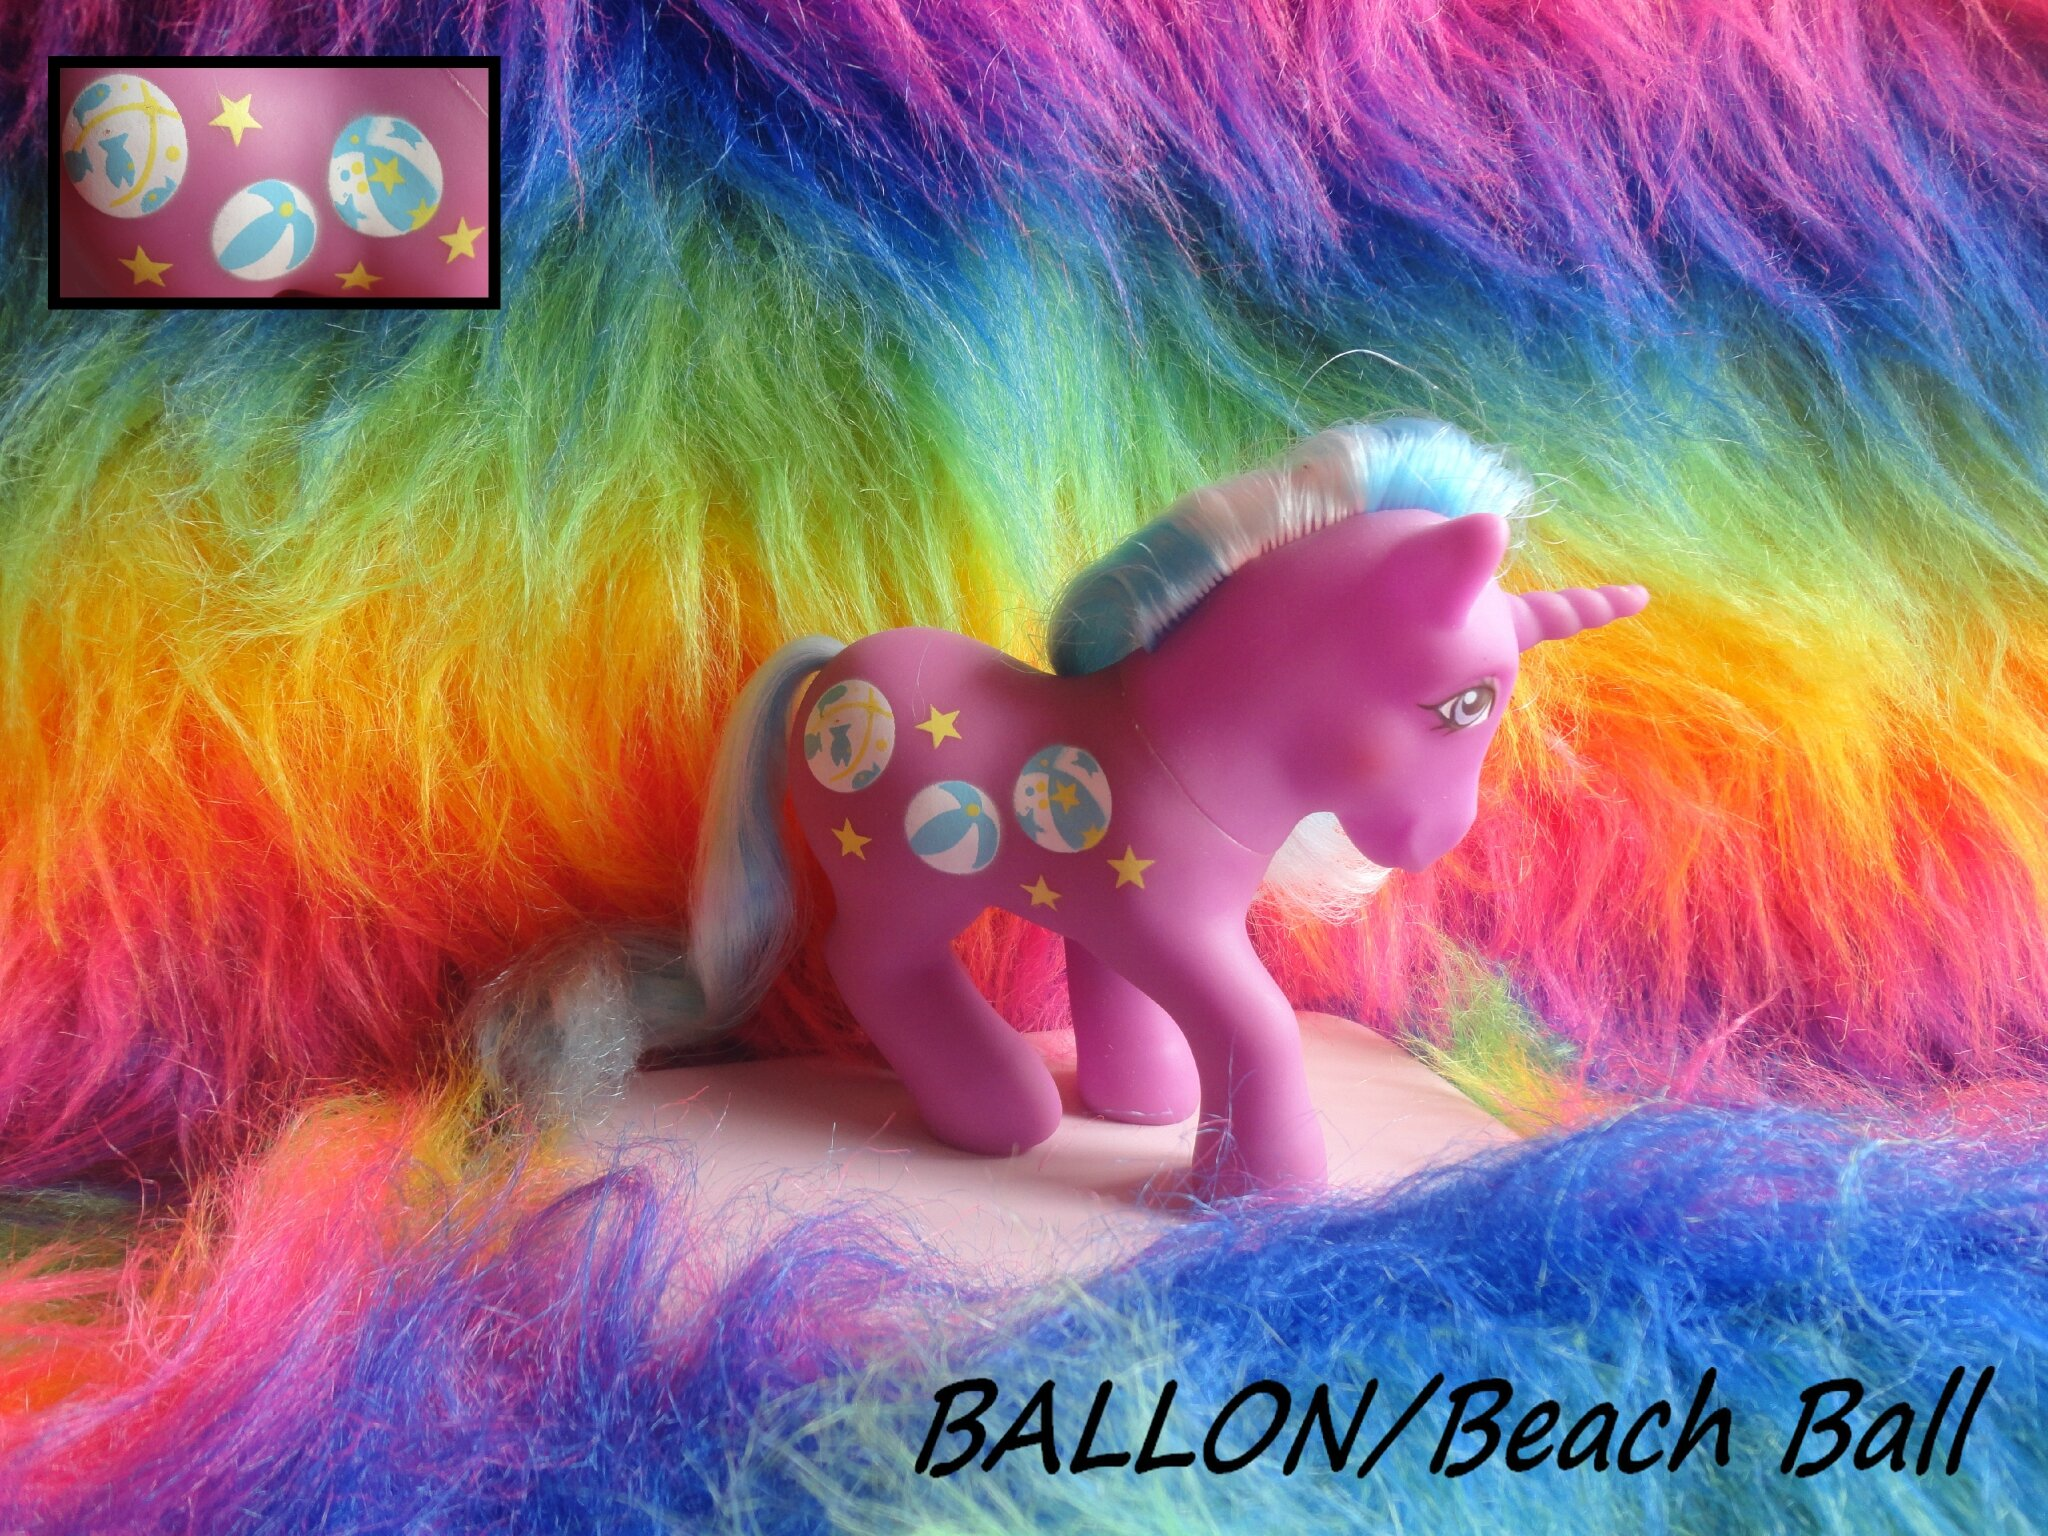 BALLON (Beach Ball)